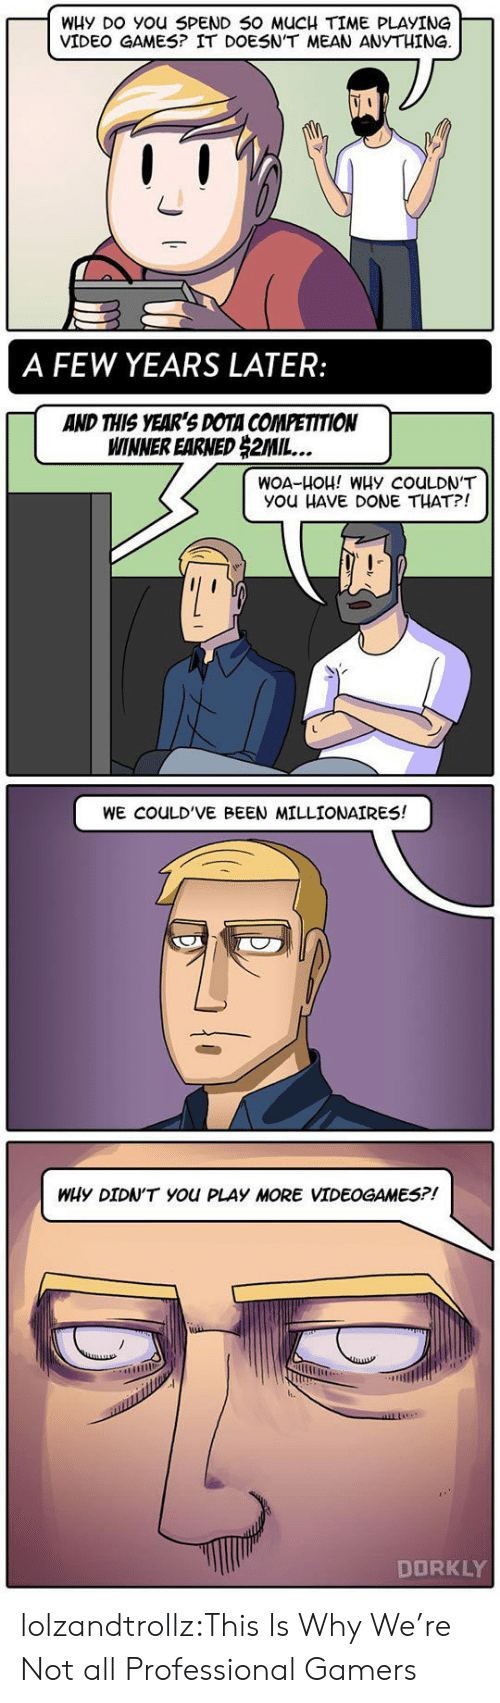 Tumblr, Video Games, and Blog: WHy DO You SPEND 50 MUCH TIME PLAYING  VIDEO GAMES? IT DOESN'T MEAN ANYTHING  賙'  A FEW YEARS LATER:  AND THIS YEAR'S DOTA COMPETITION  WINNER EARNED 2MIL  WOA-HOH! WHy COULDN'T  You HAVE DONE THAT?!  WE COULD'VE BEEN MILLIONAIRES!  WHy DIDN'T You PLAY MORE VIDEOGAMES?!  IL.  DORKLY lolzandtrollz:This Is Why We're Not all Professional Gamers